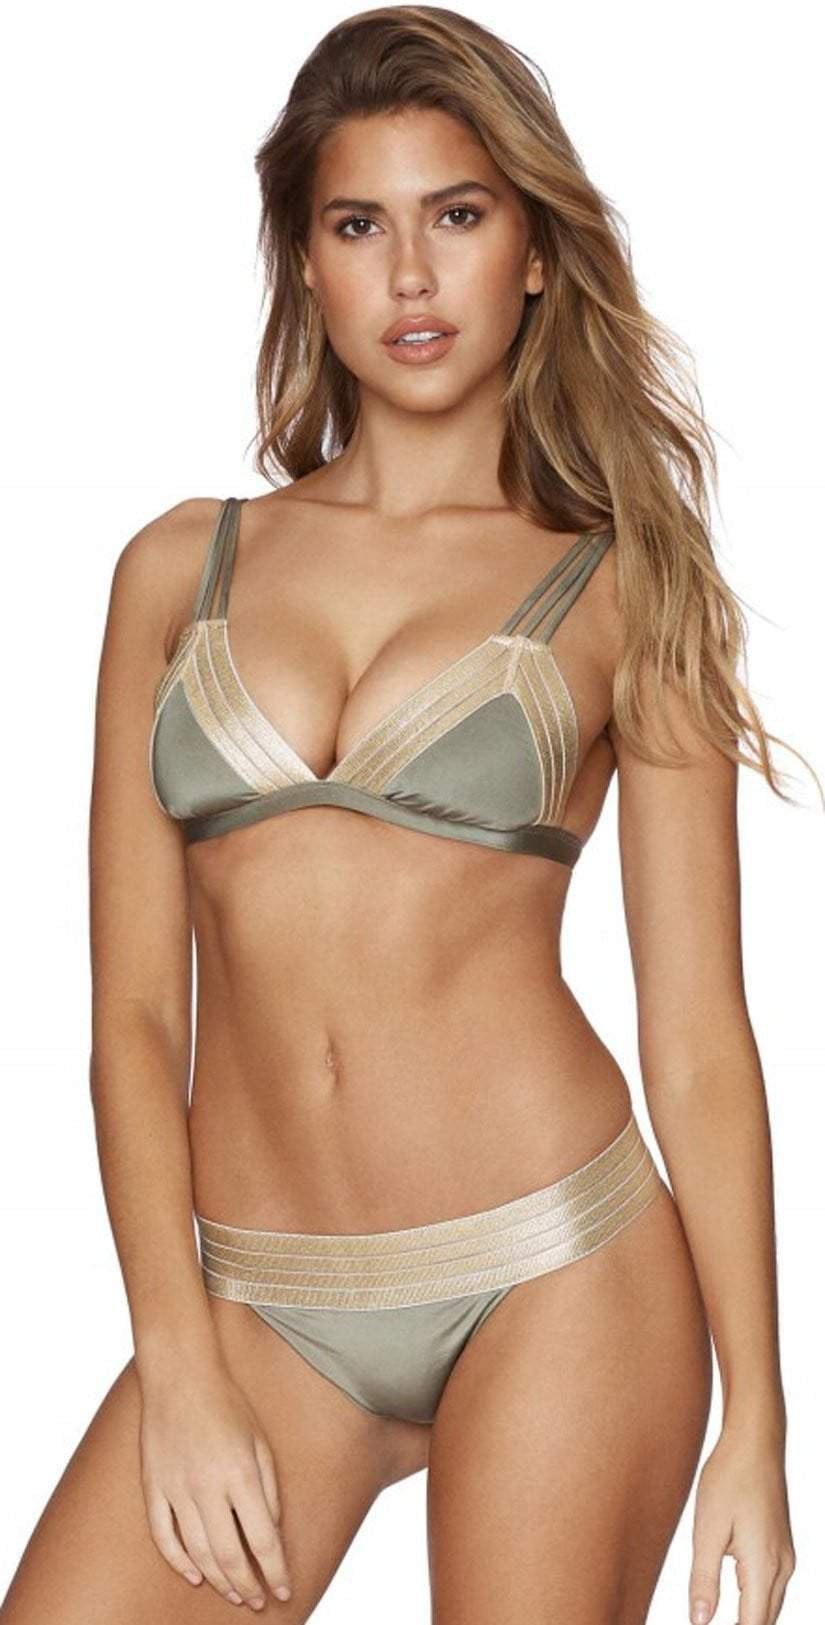 Beach Bunny Sheer Addiction Triangle Top in Army B17123T1-313-AMY: